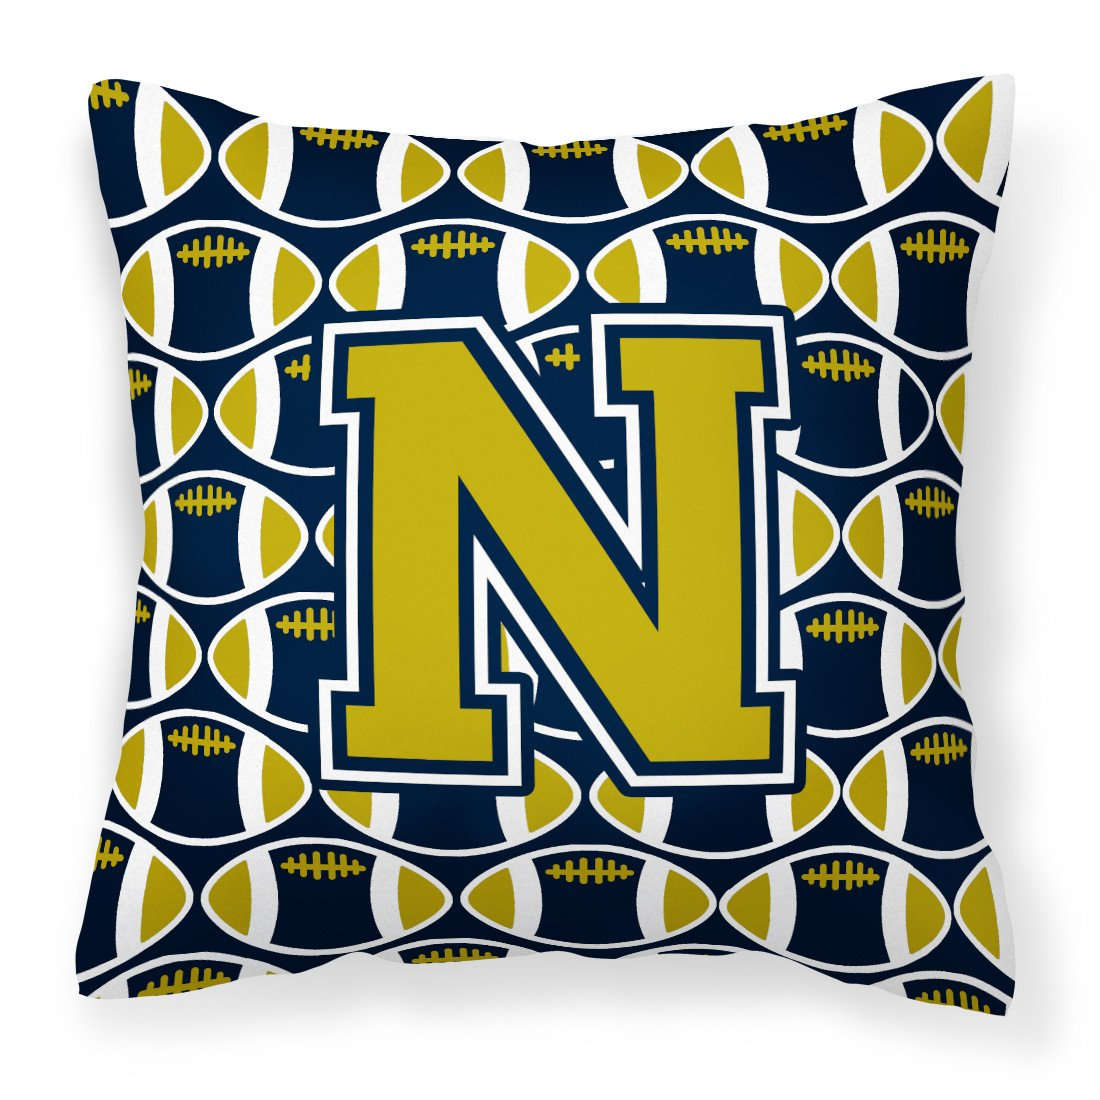 Letter N Football Blue and Gold Fabric Decorative Pillow CJ1074-NPW1414 by Caroline's Treasures